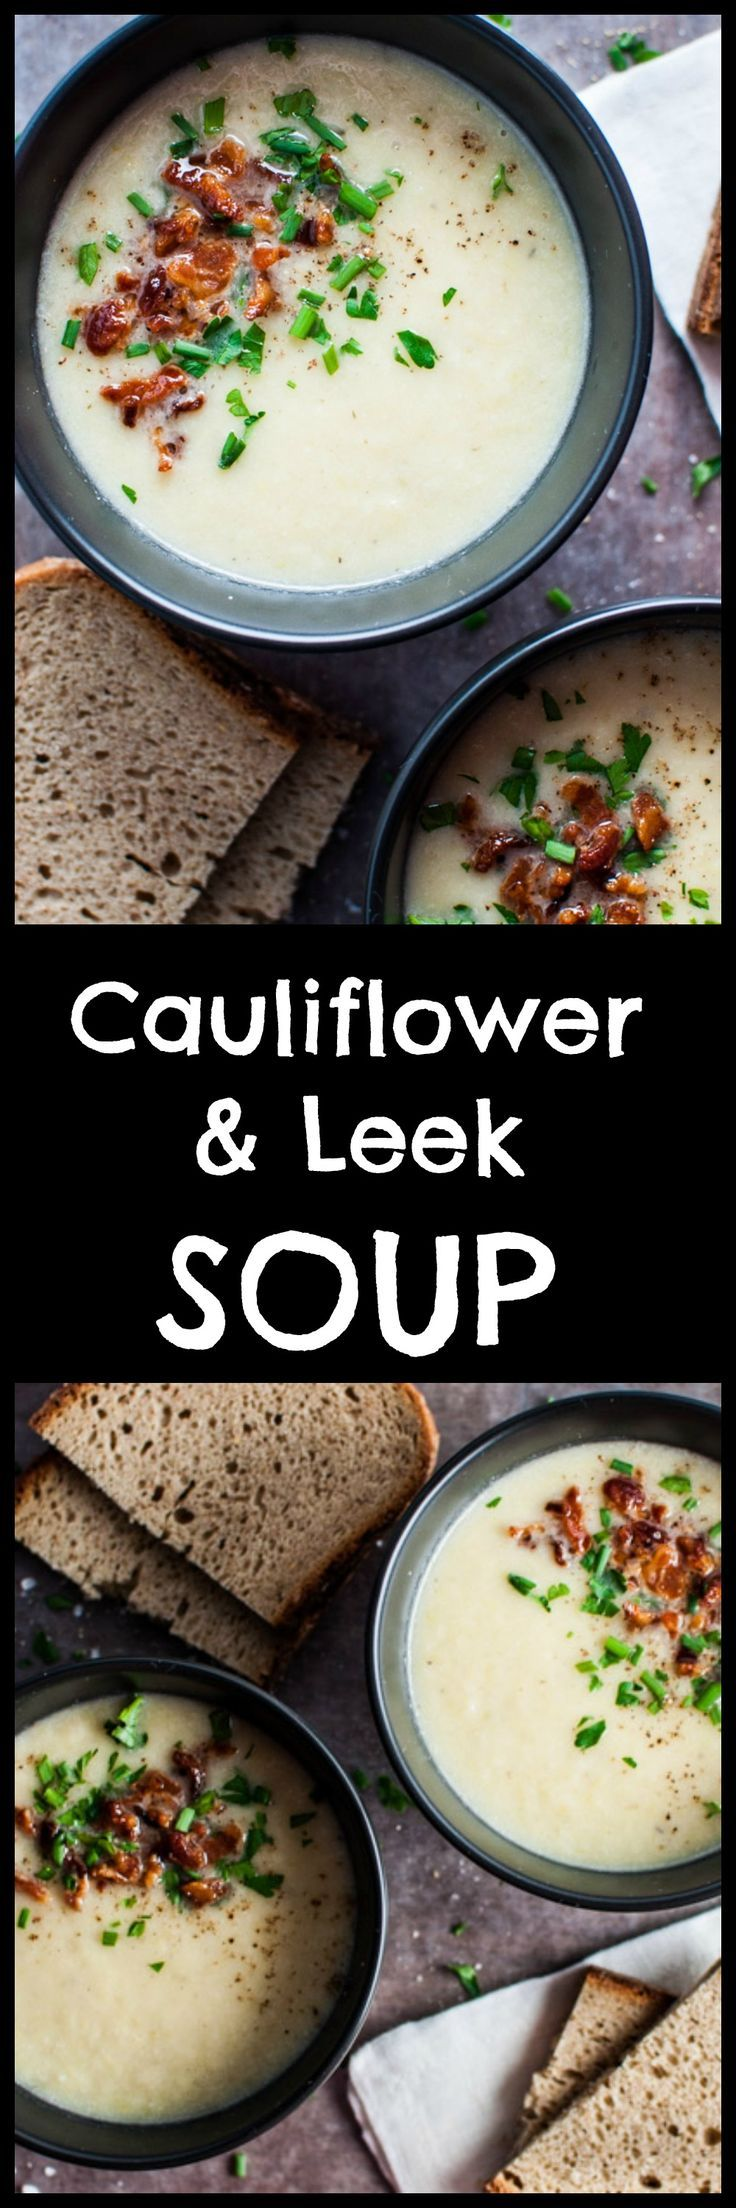 Cauliflower and leek soup – a light and healthy meal that is ready in only 40 minutes!